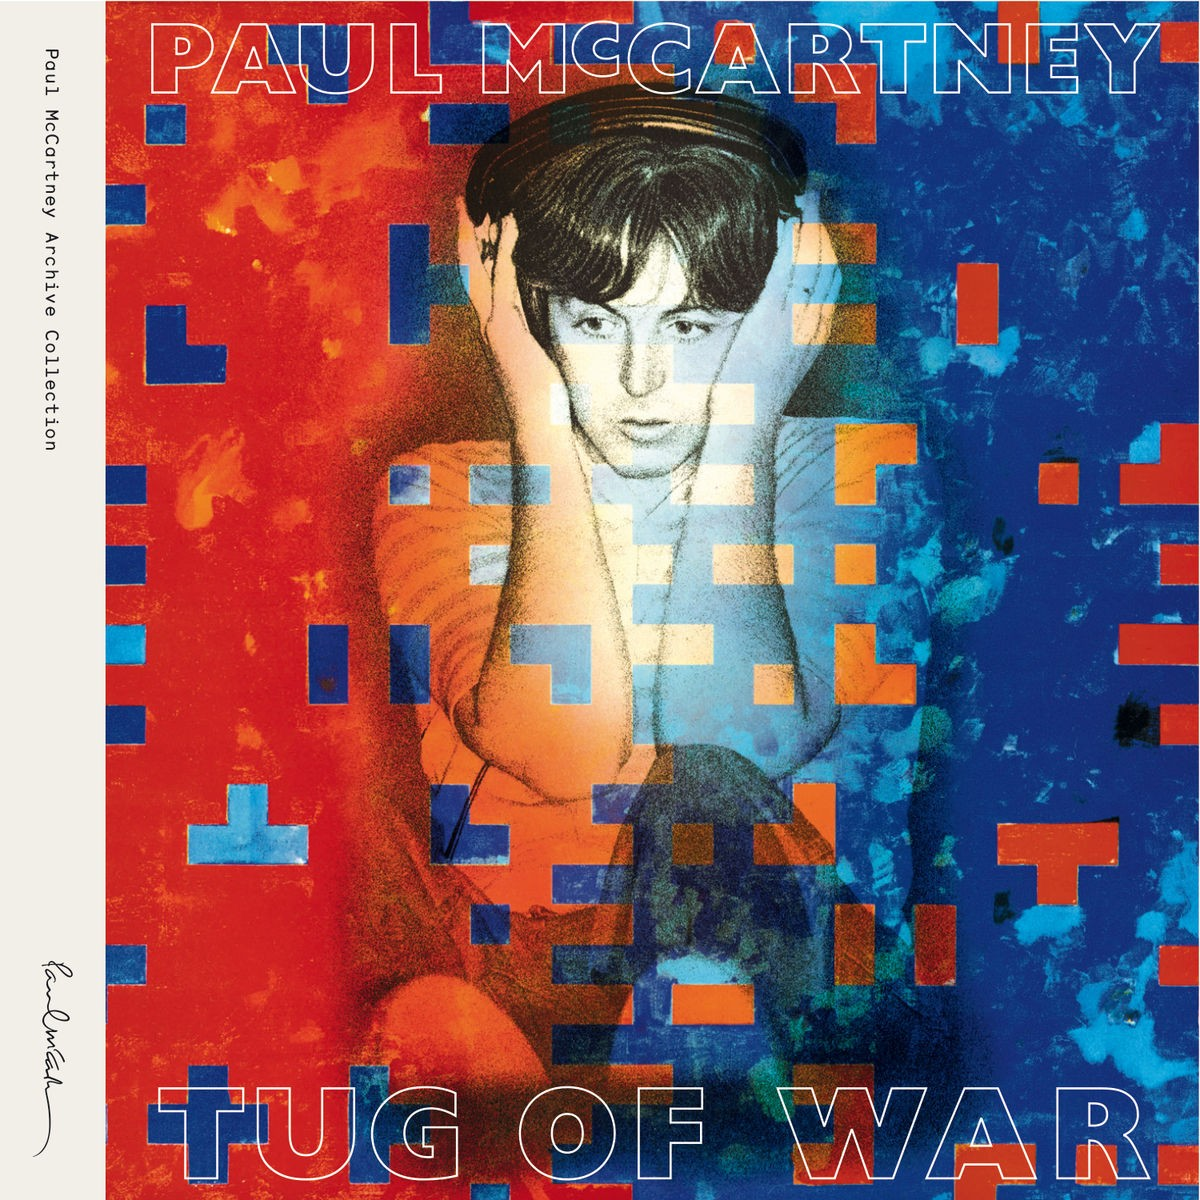 Paul McCartney - Tug Of War VINYL - 08880 7237571